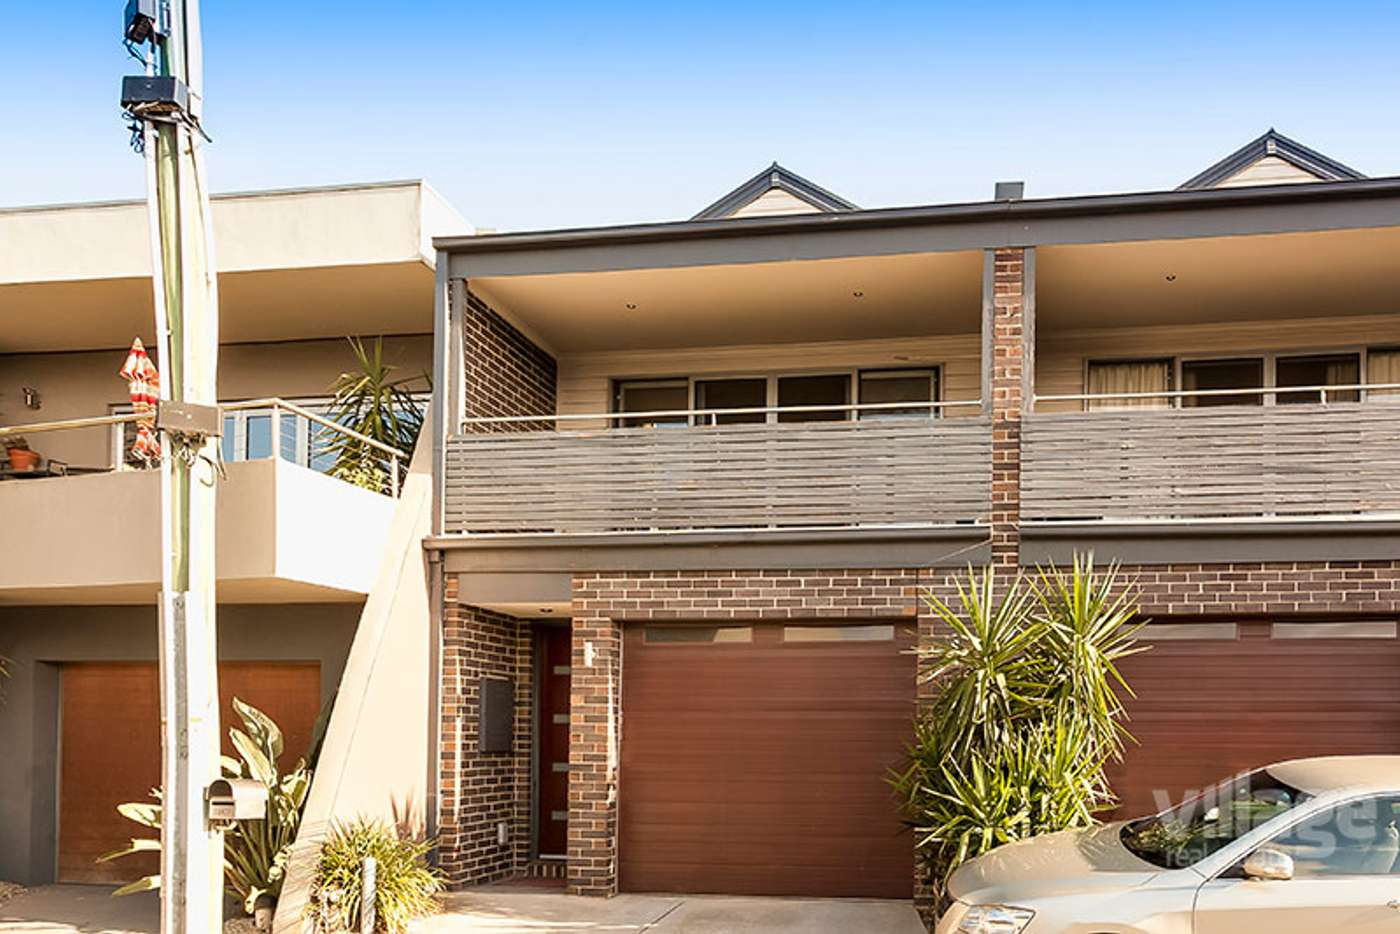 Main view of Homely townhouse listing, 14 Emma Street, Seddon VIC 3011